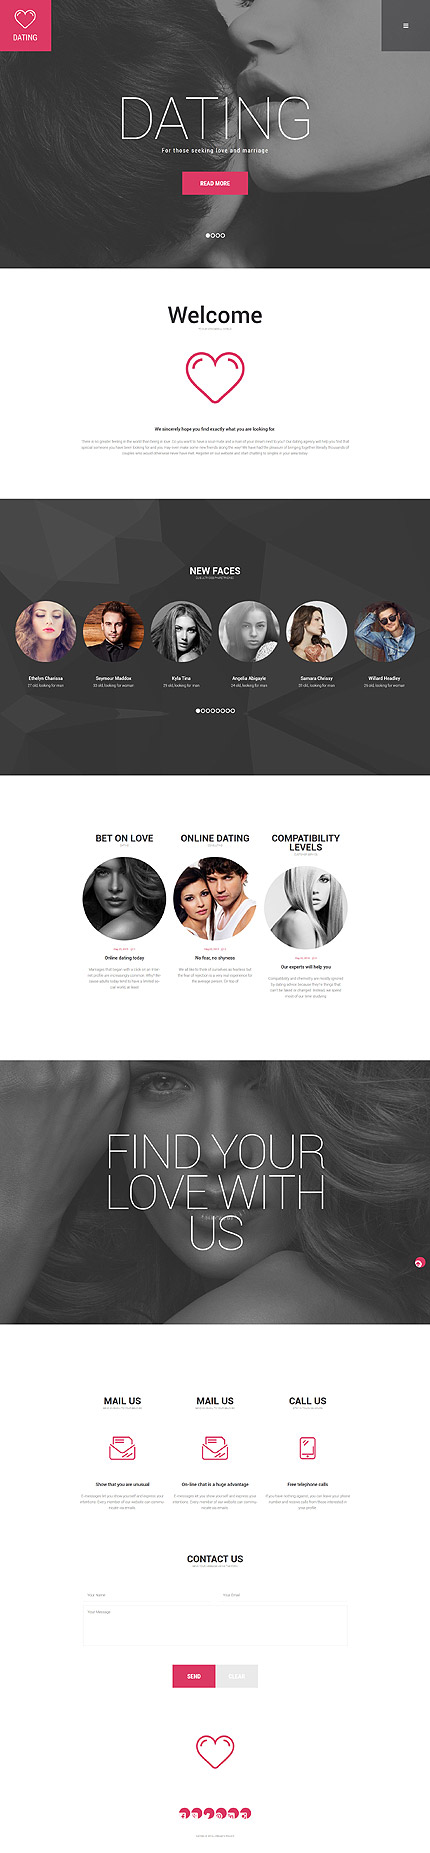 Wedding Most Popular website inspirations at your coffee break? Browse for more WordPress #templates! // Regular price: $79 // Sources available: .PSD, .PHP, This theme is widgetized #Wedding #Most Popular #WordPress